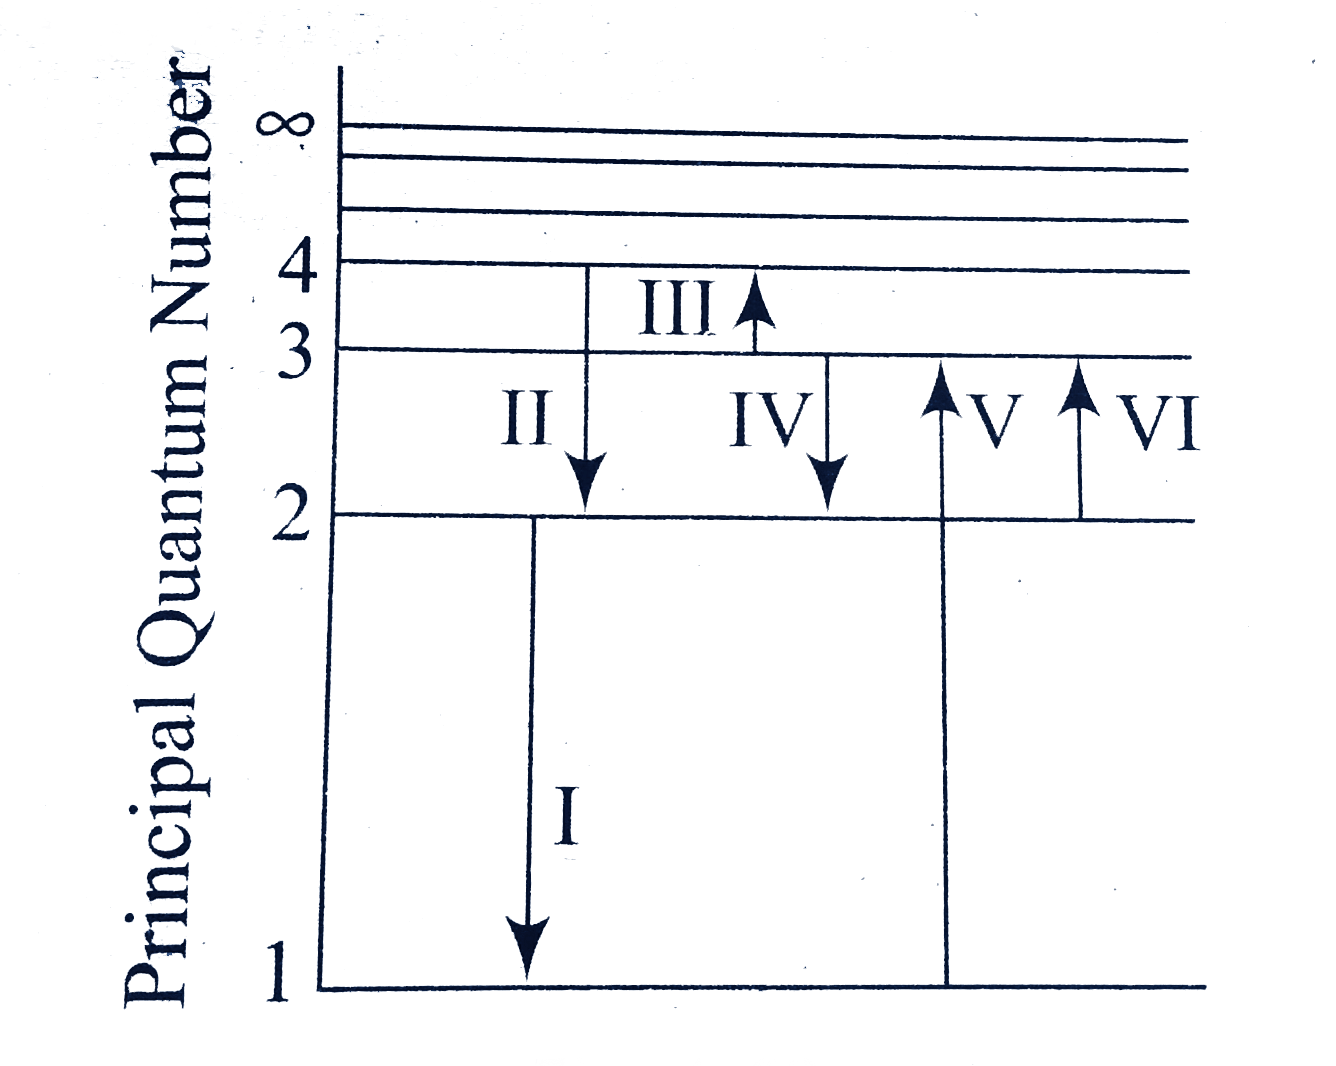 hight resolution of the figure above shown level diagram of the hydrogen atom serveral transition are market as i ii iii the diagram is only indicative and not to scale